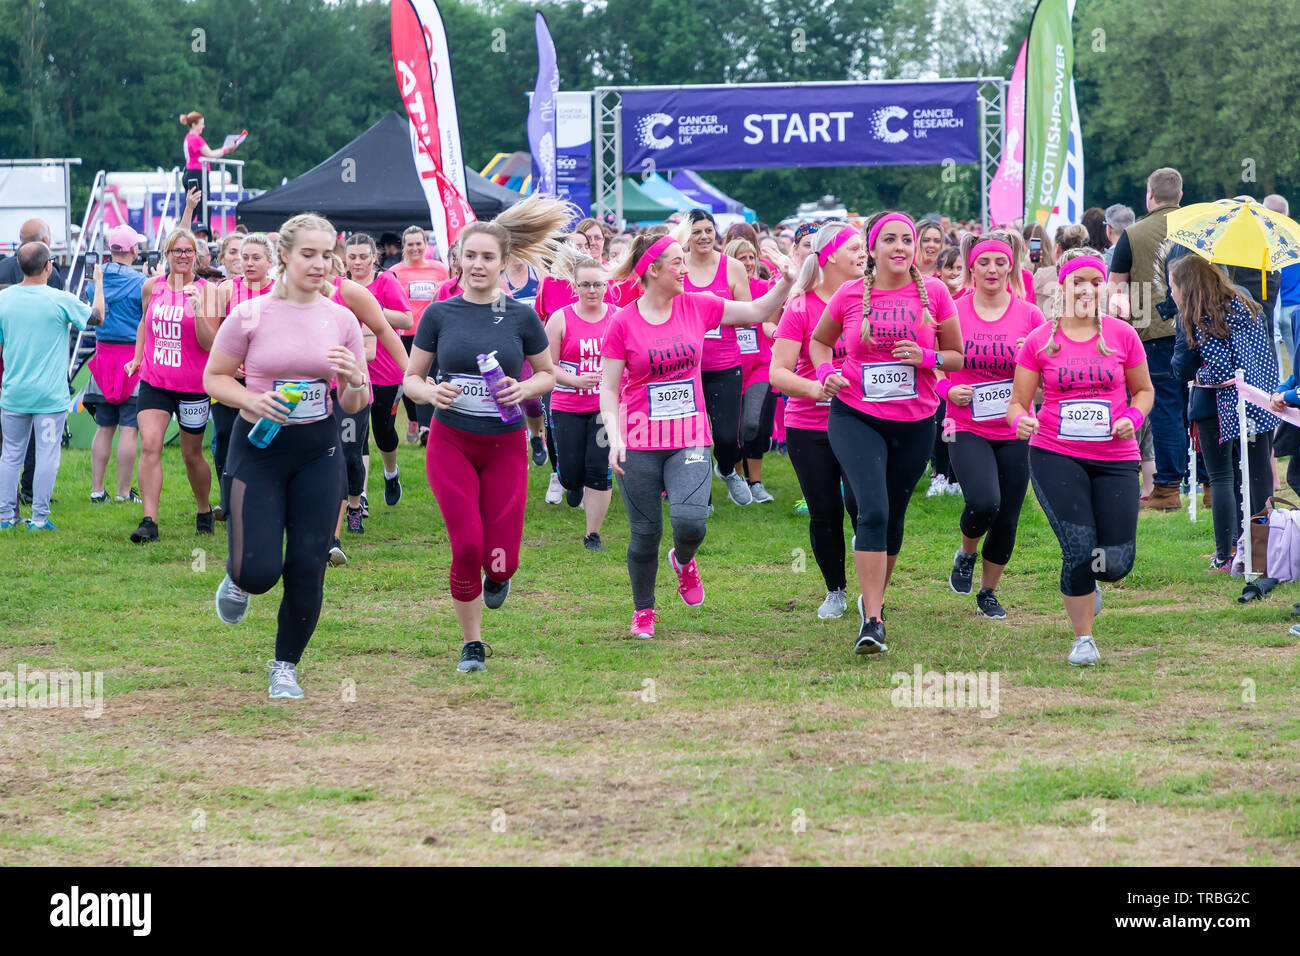 Warrington, UK. 2nd June 2019. Race for Life 2019, Warrington, in aid of Cancer Research. The start of one of the races Credit: John Hopkins/Alamy Live News - Stock Image